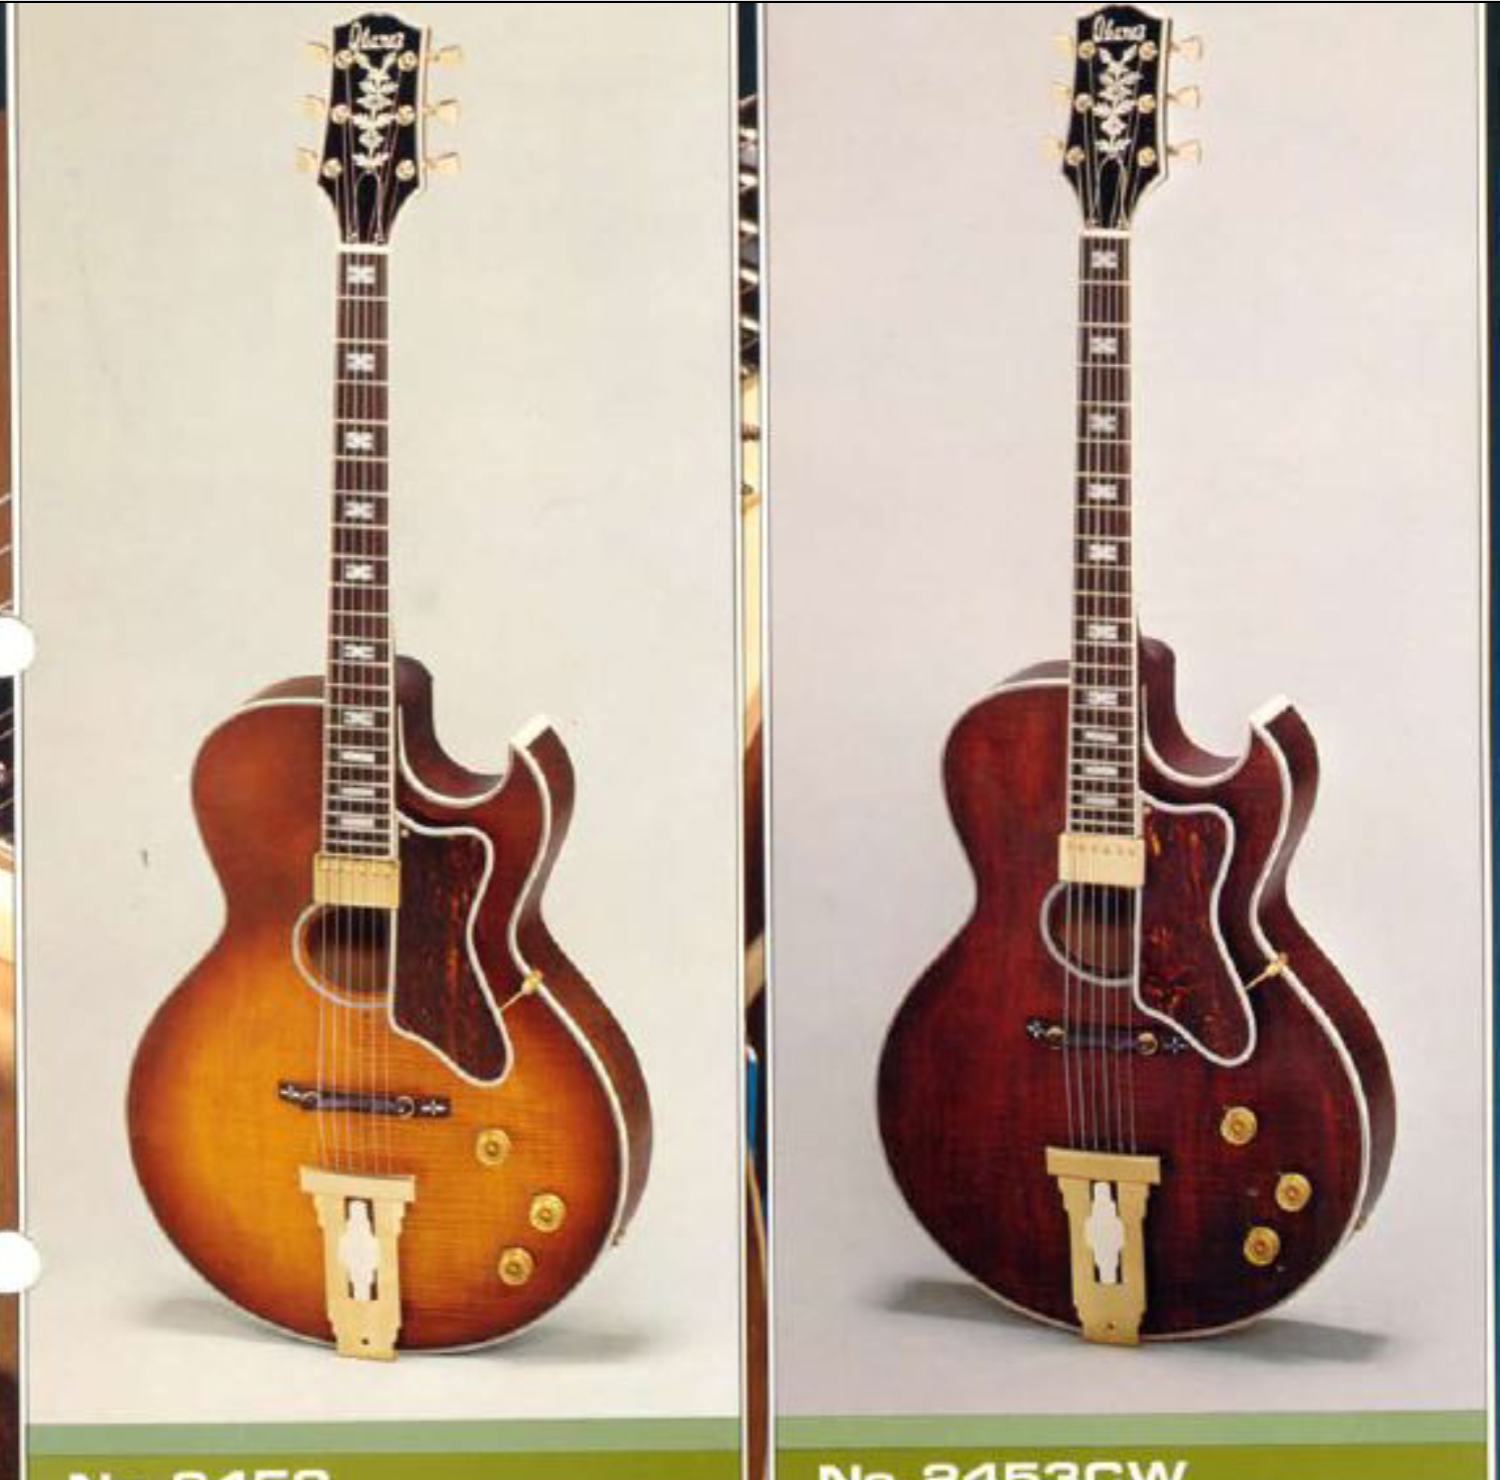 Japanese MANN Howard Roberts guitar (Ibanez 2453 ?)-ibanez-1976-howard-roberts-2453-2-png